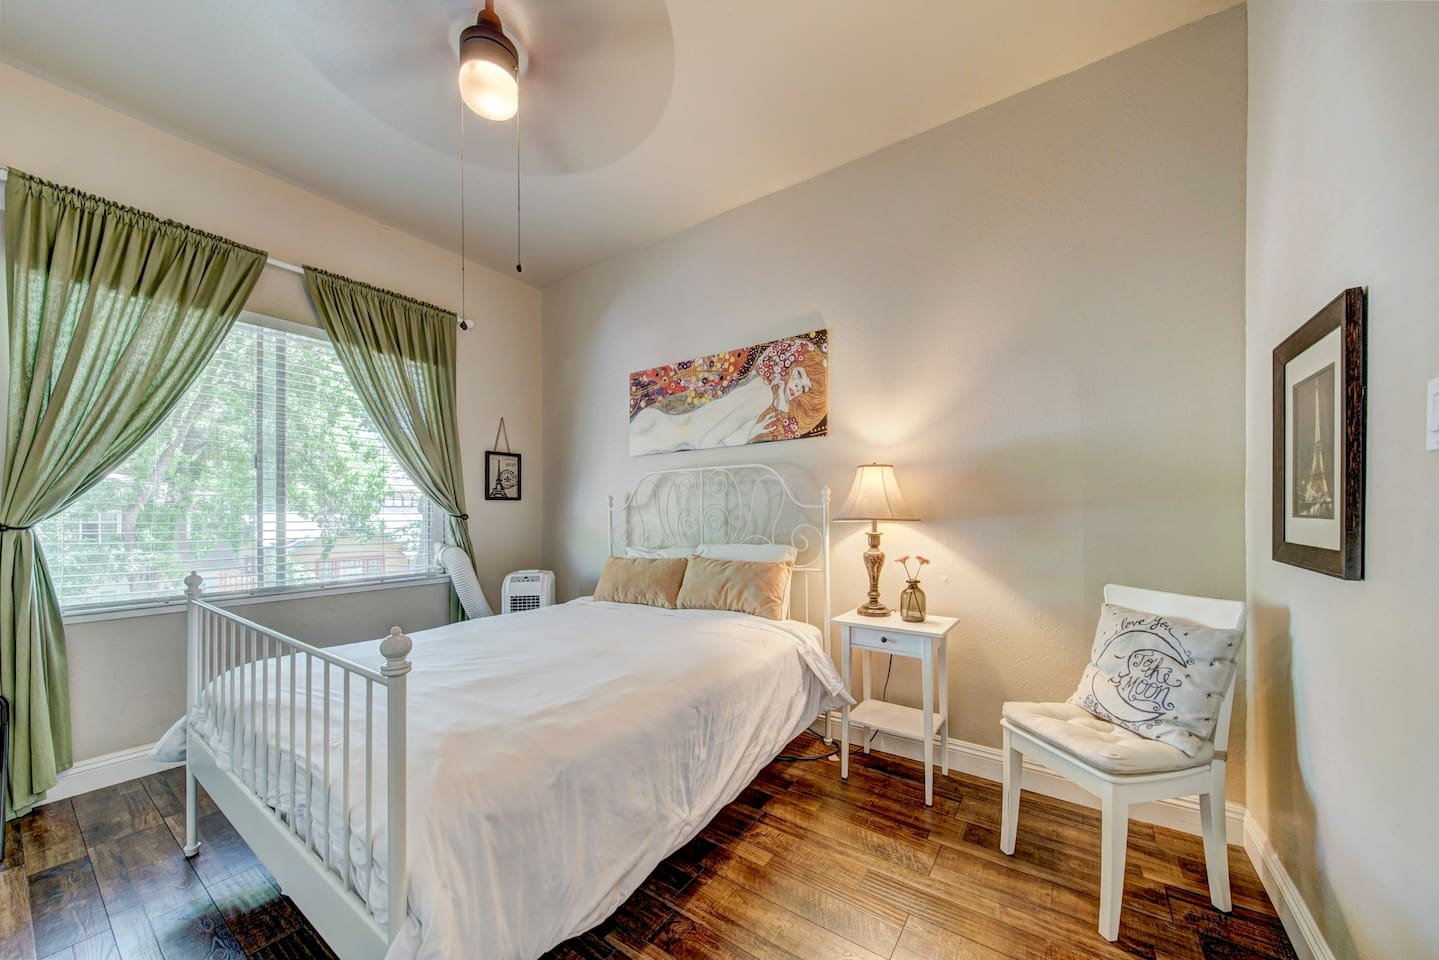 Spacious front bedroom with plenty of room for your belongings and natural light that streams in through he massive trees that line the street outside